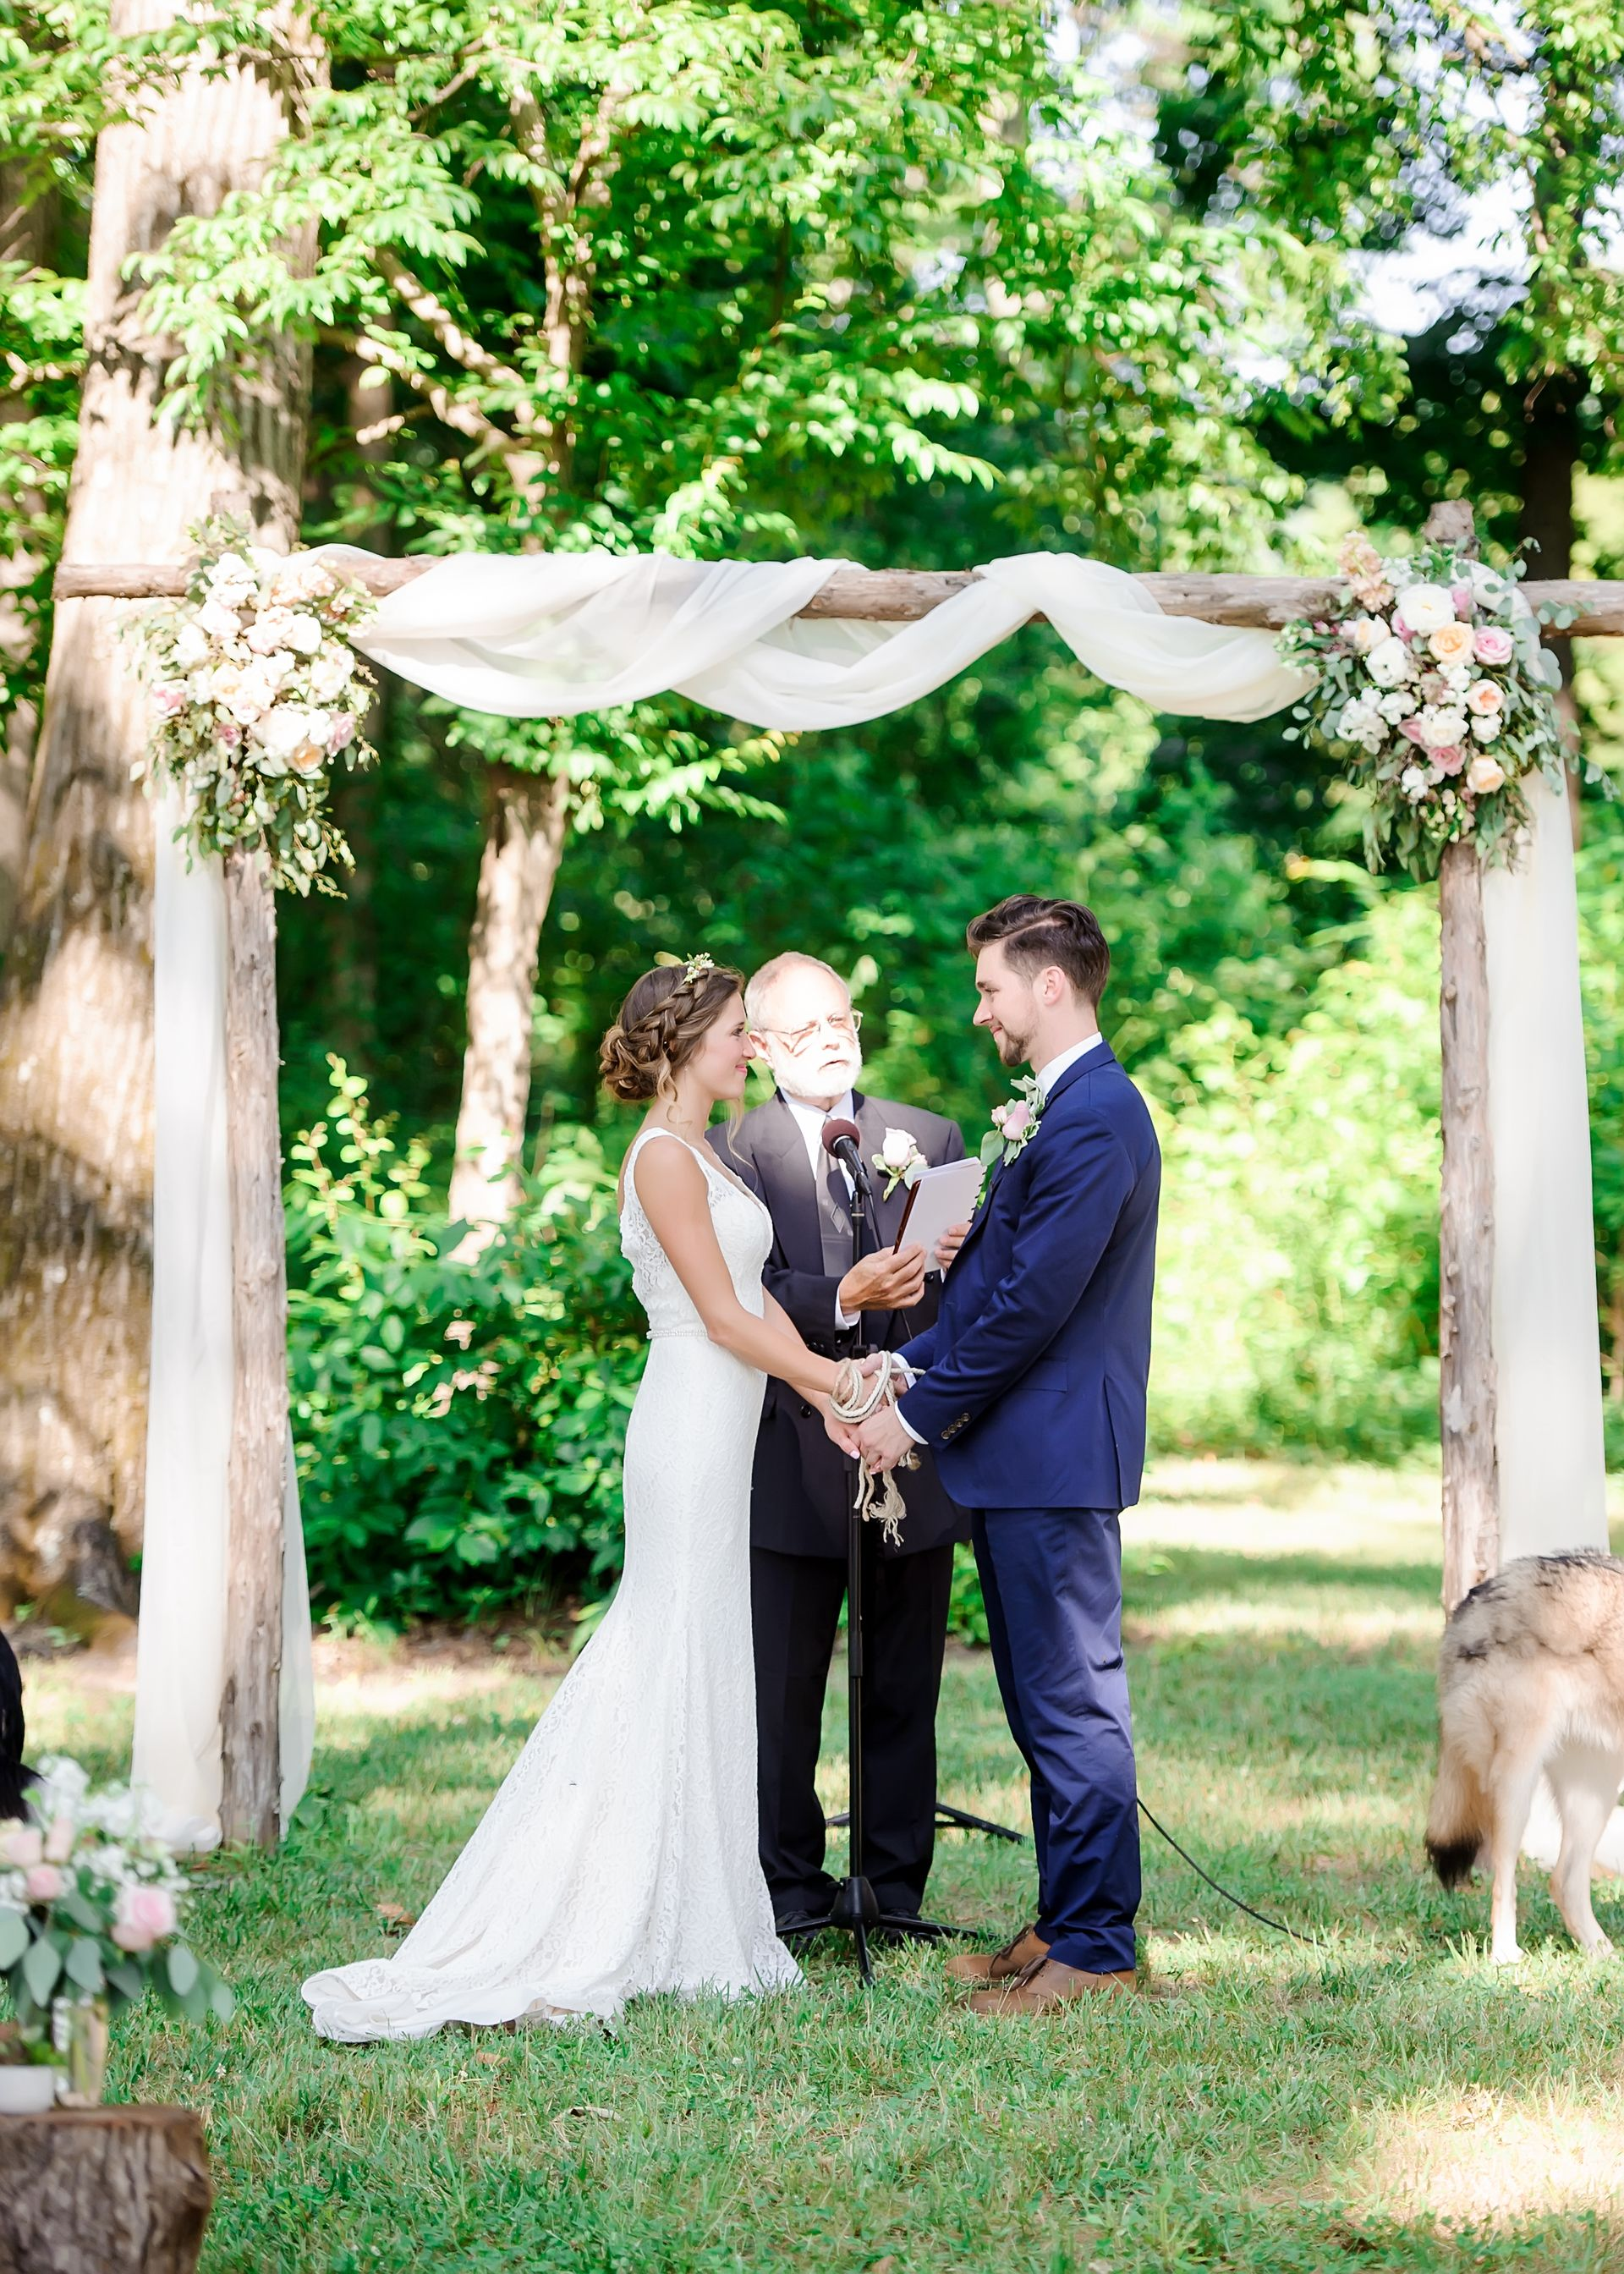 Romantic Wooden Arbor For The Wedding Ceremony Draped In Soft White Fabric Pastel Pink And Peach Floral Wedding Trellis Wedding Arbors Woods Wedding Ceremony